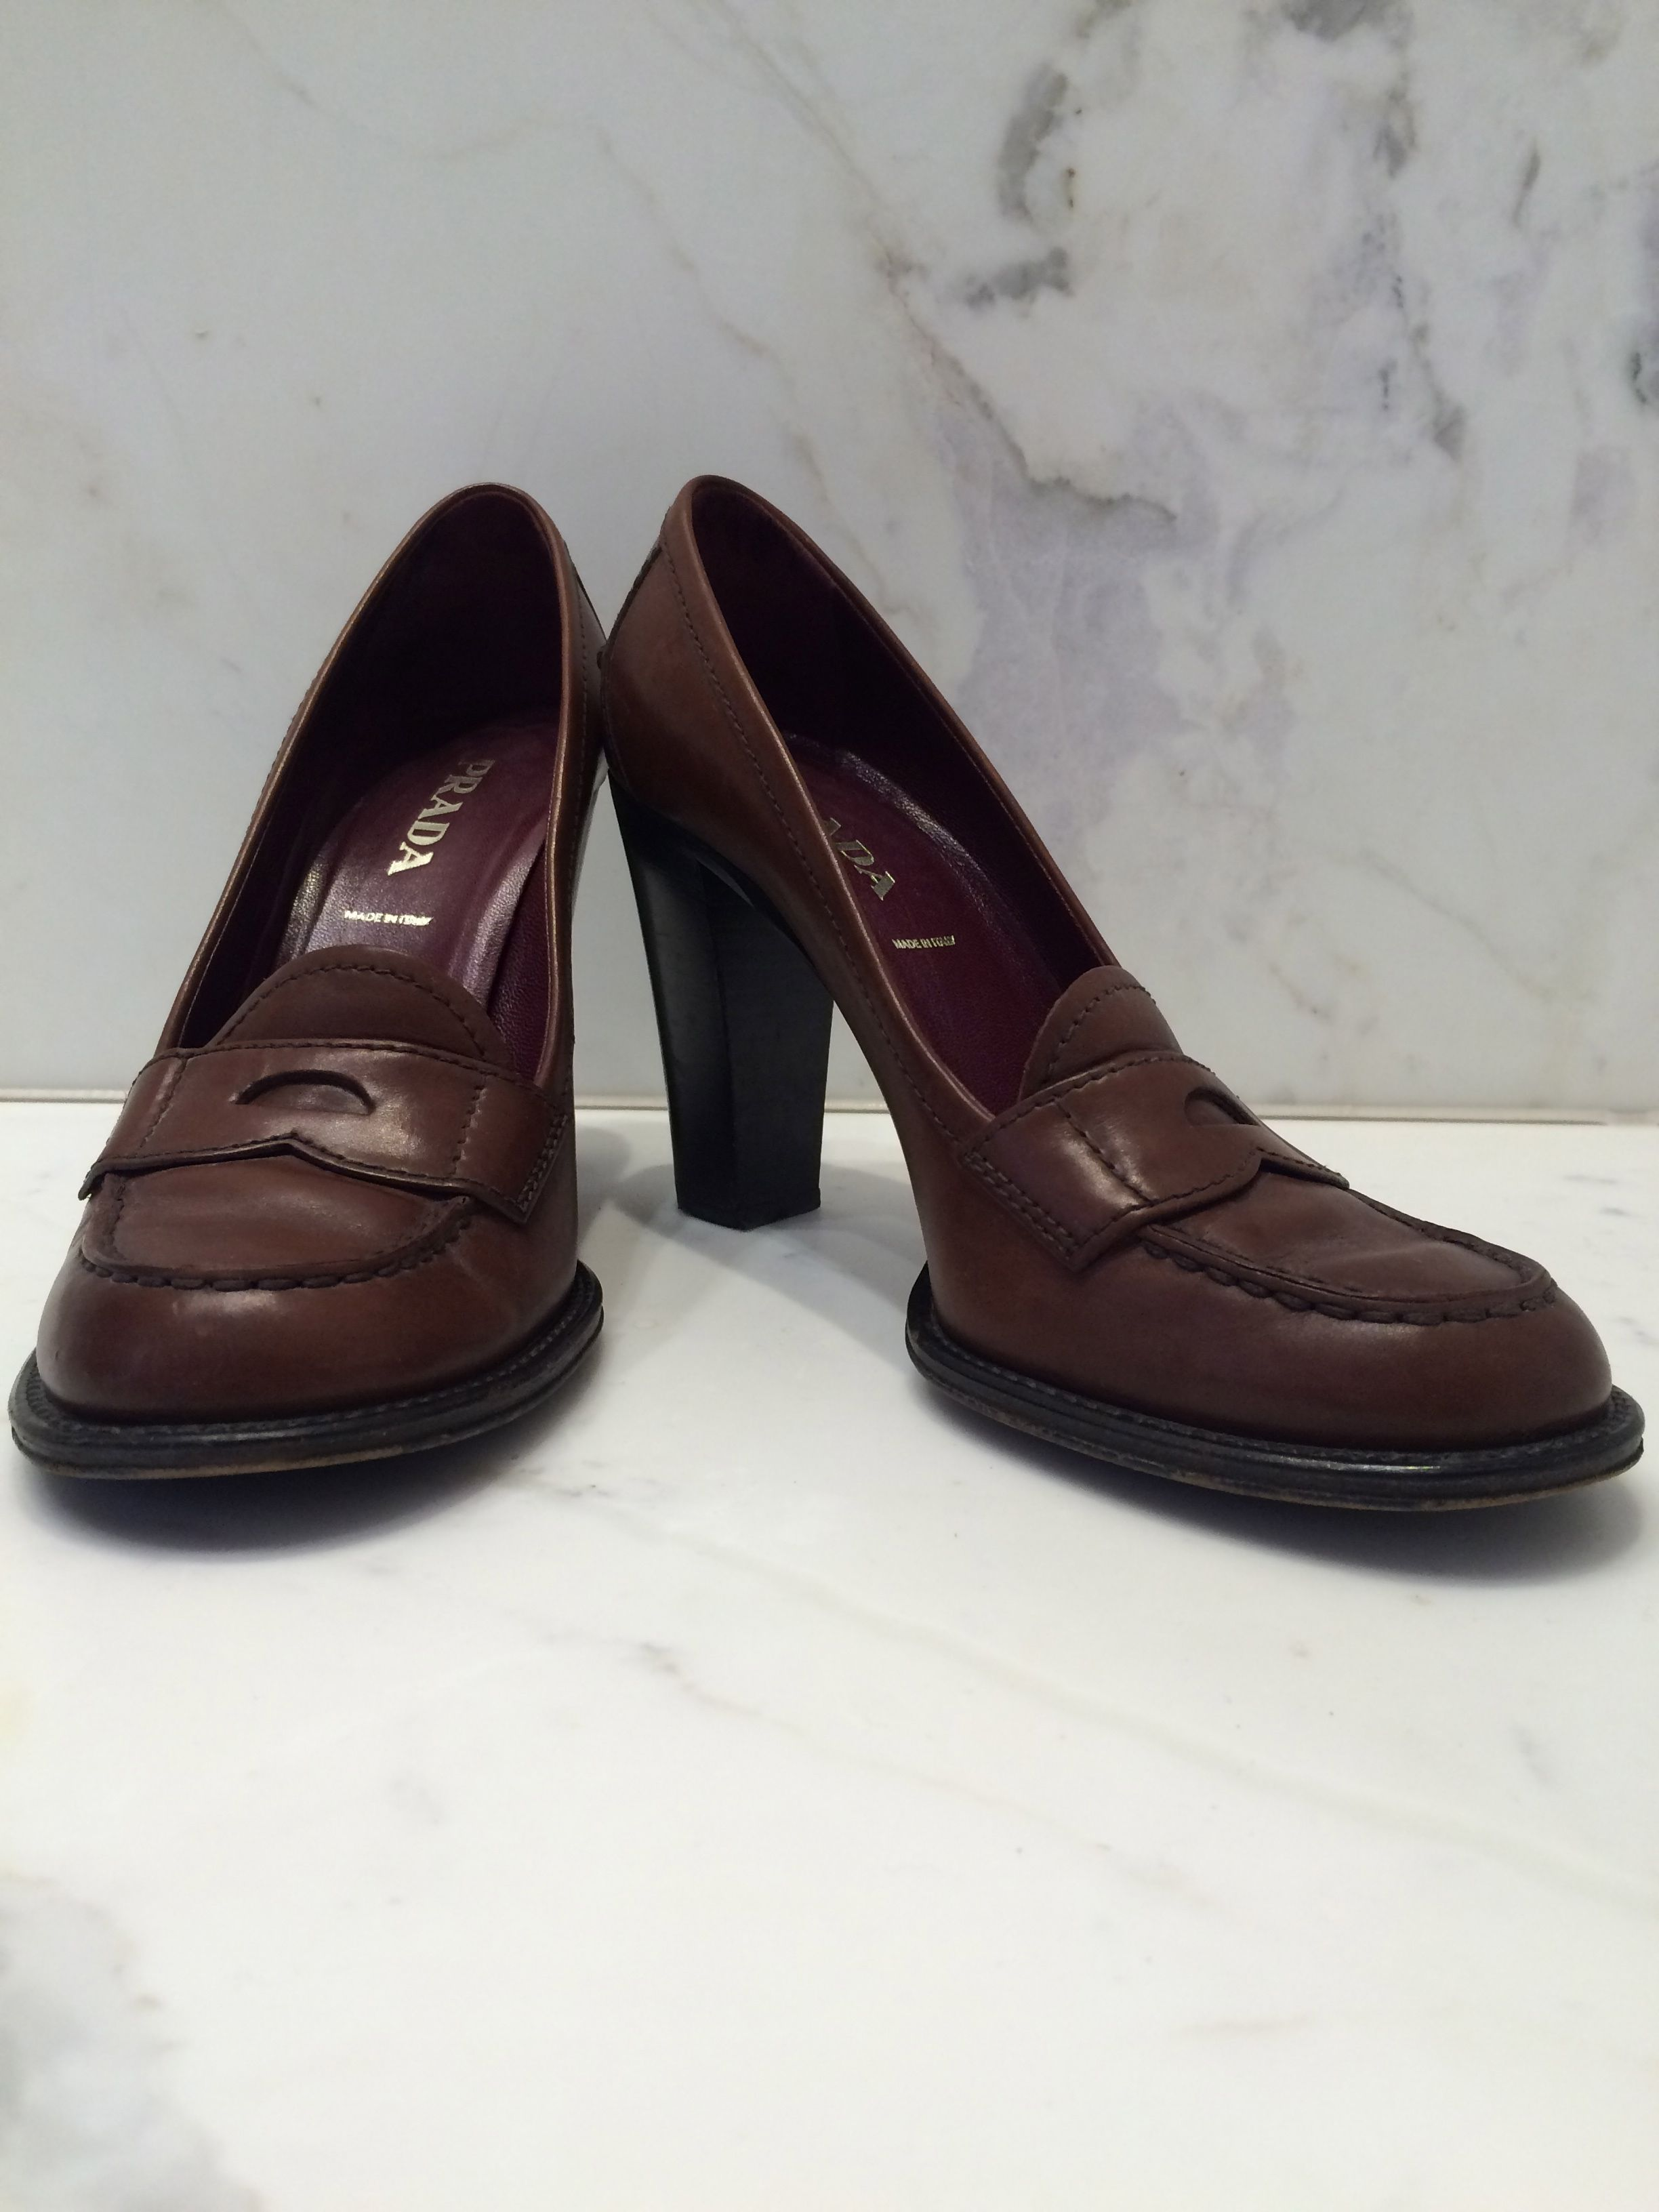 f402044f1 PRADA Heeled Penny Loafer in gorgeous burgundy leather. Made in Italy.  http